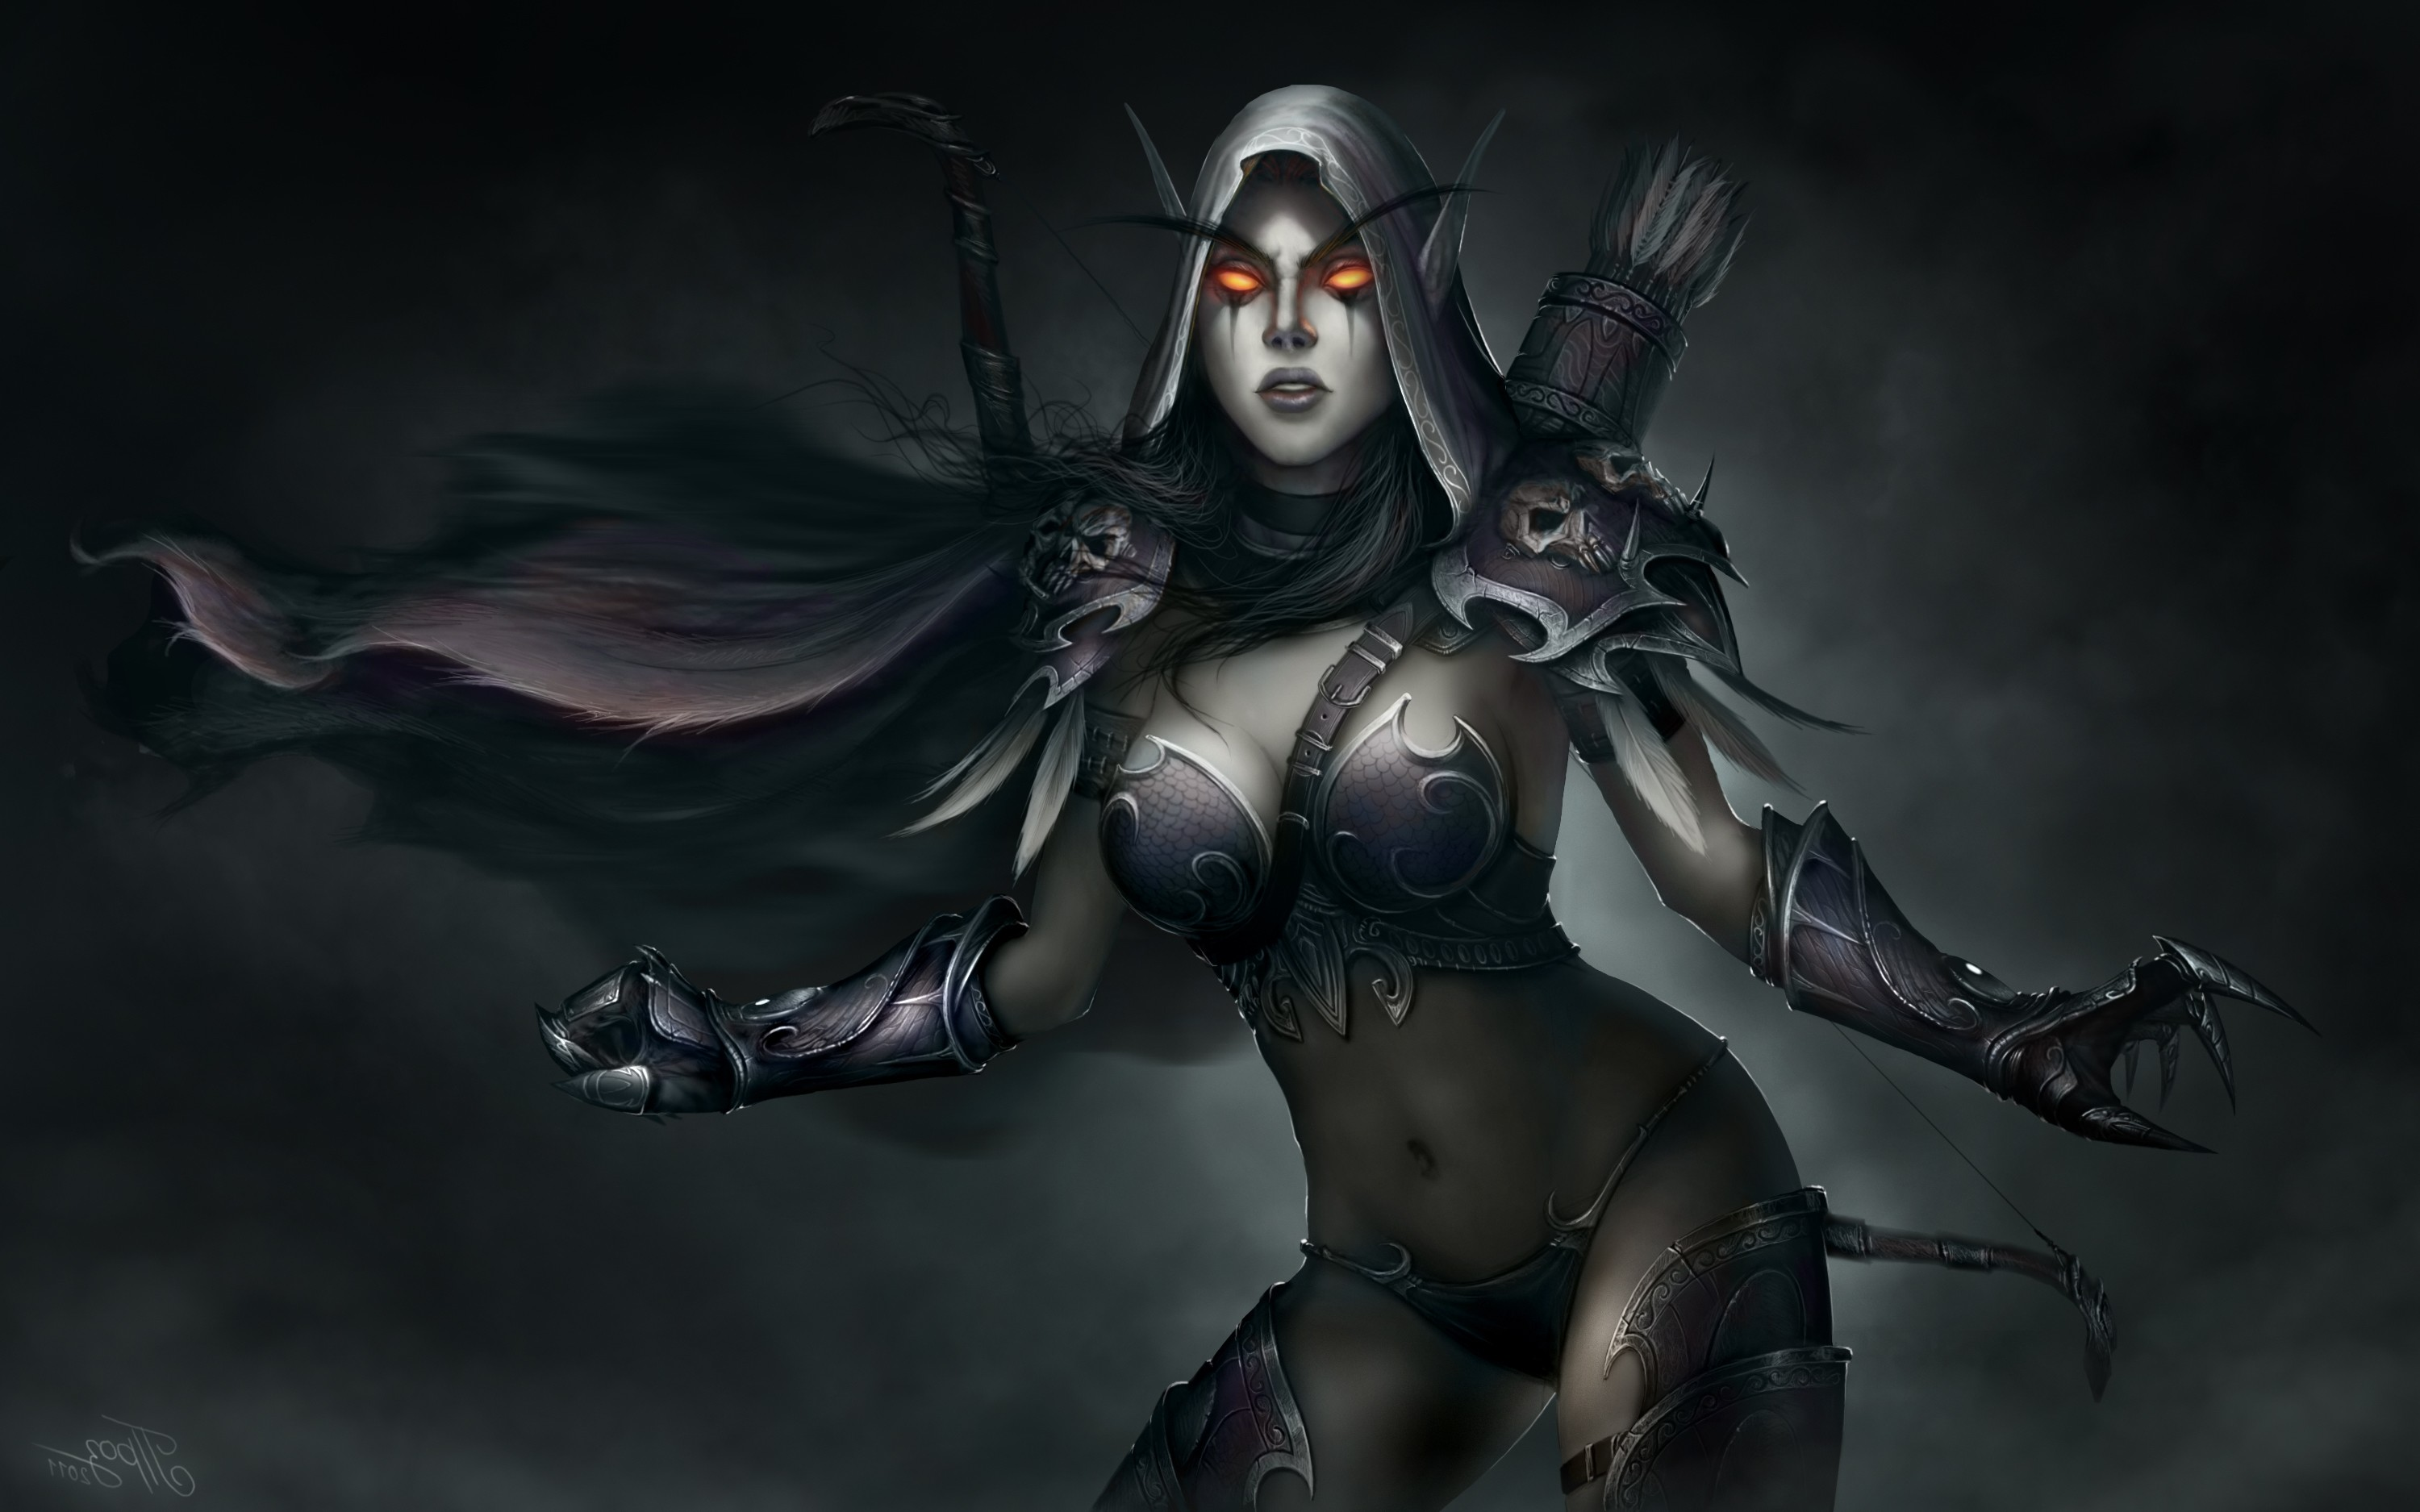 Whorecraft jaina and sylvanas nudes images